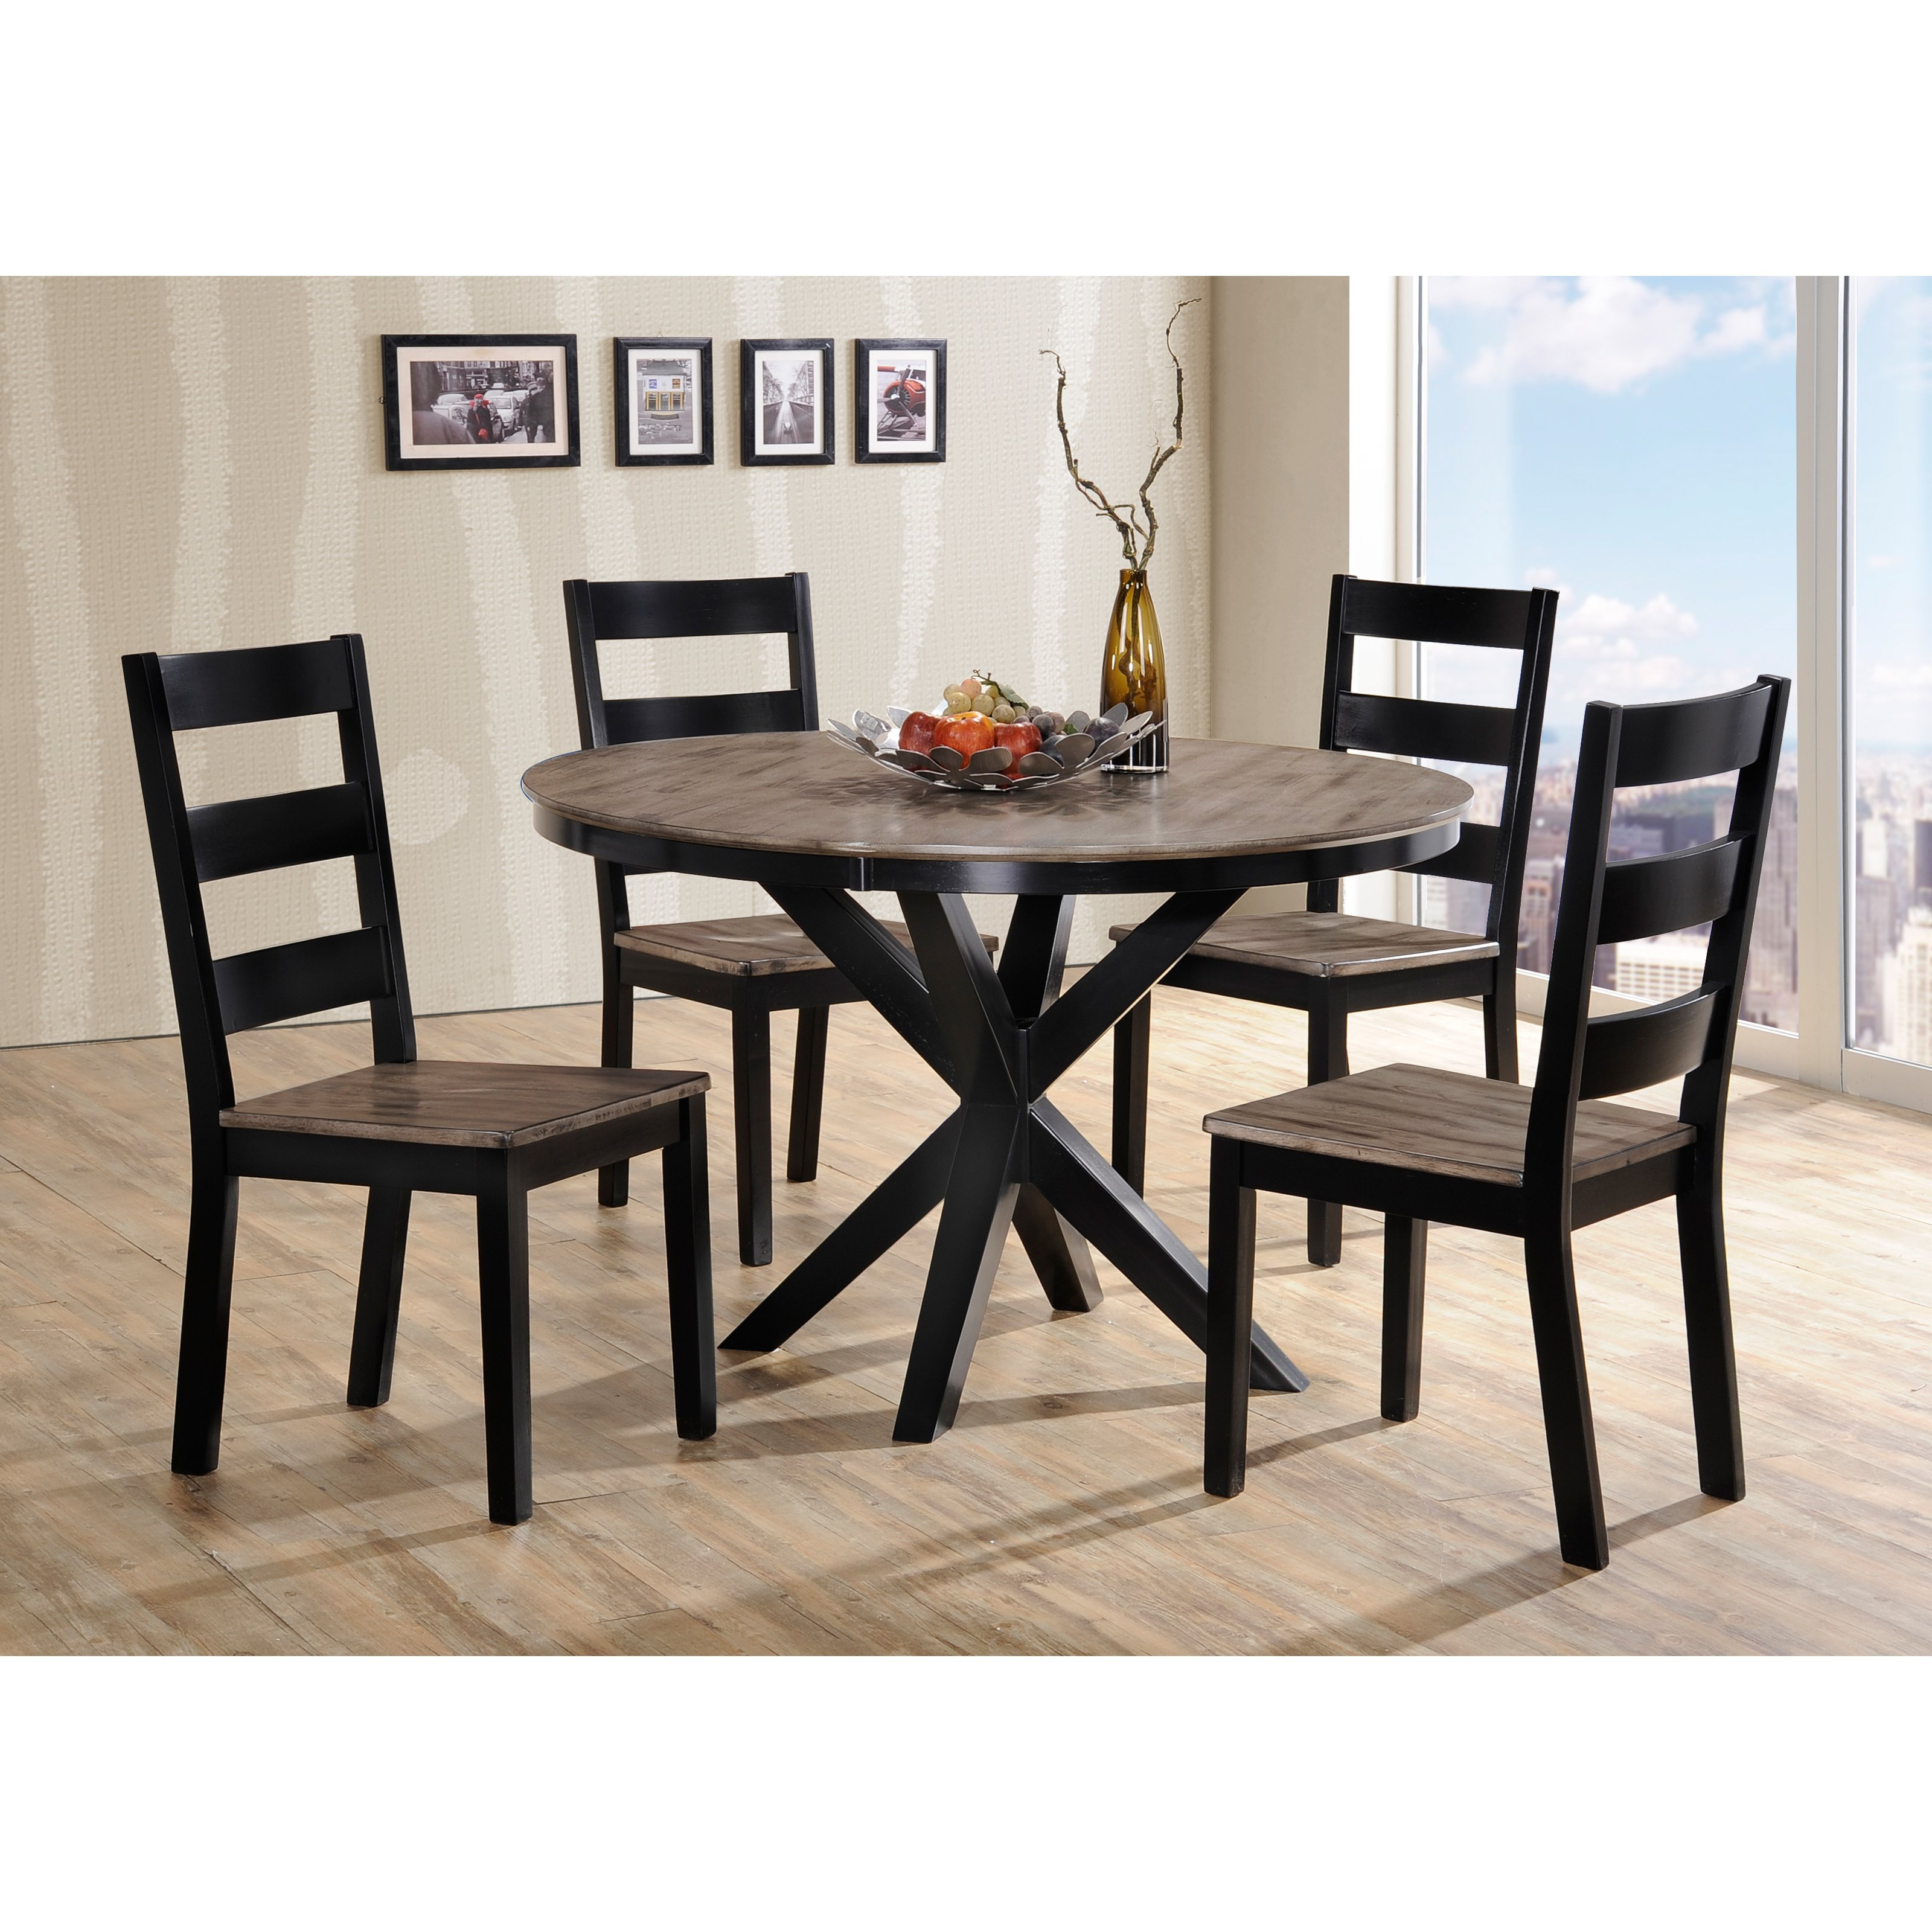 Simmons South Beach Dining Chairs Set Of 2 Walmart Com